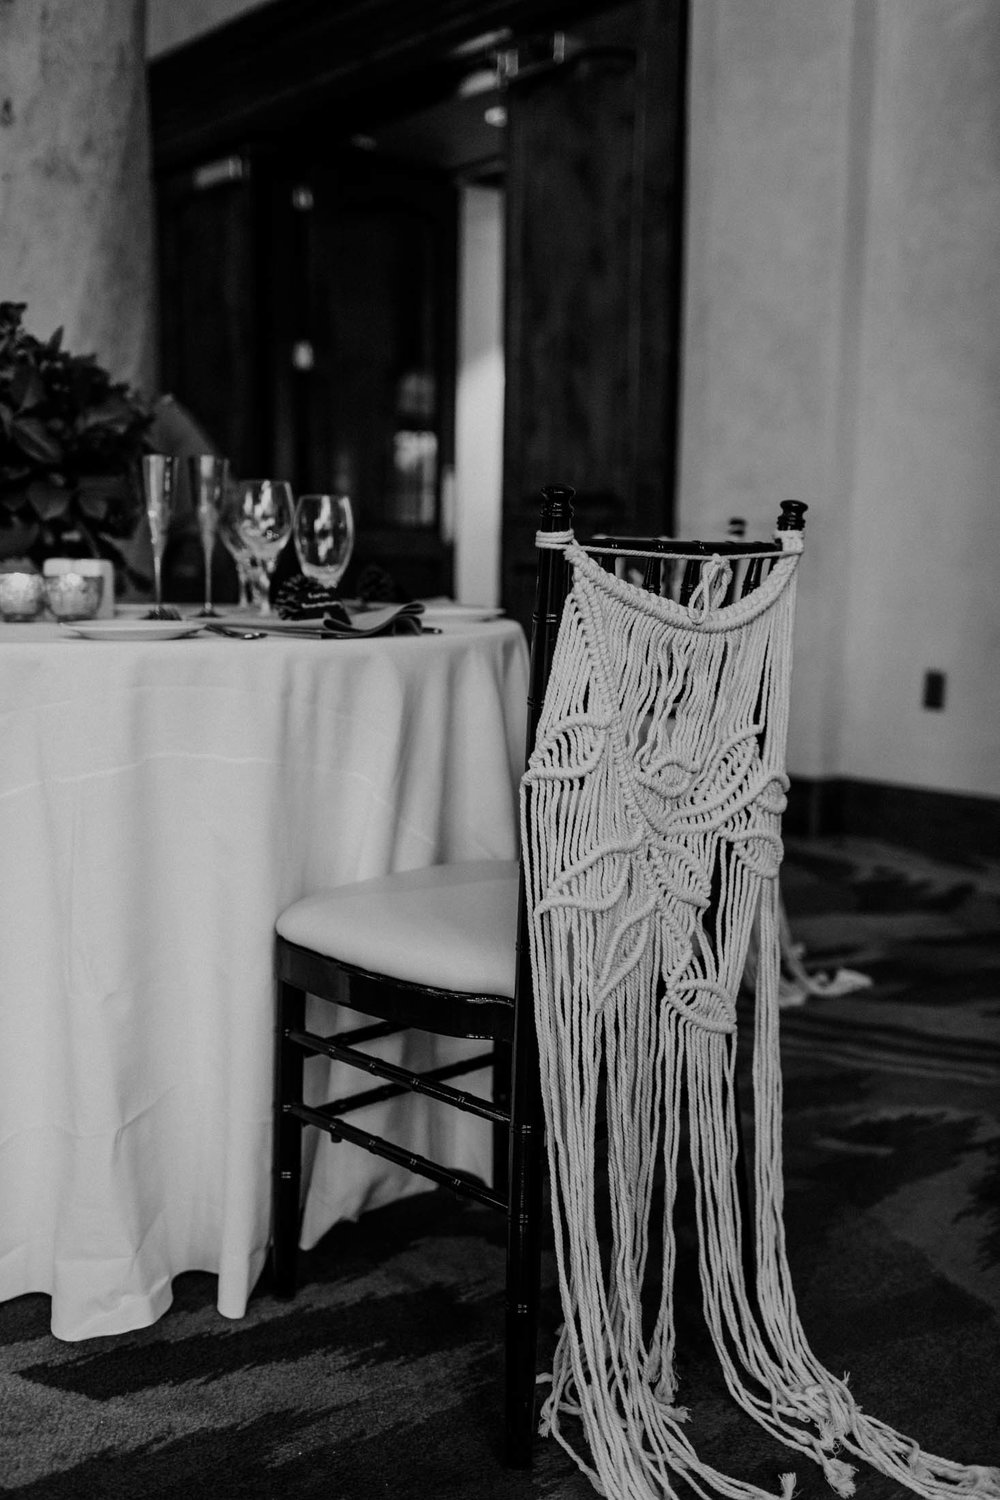 k_B_sunvalleywinterwedding-97.jpg